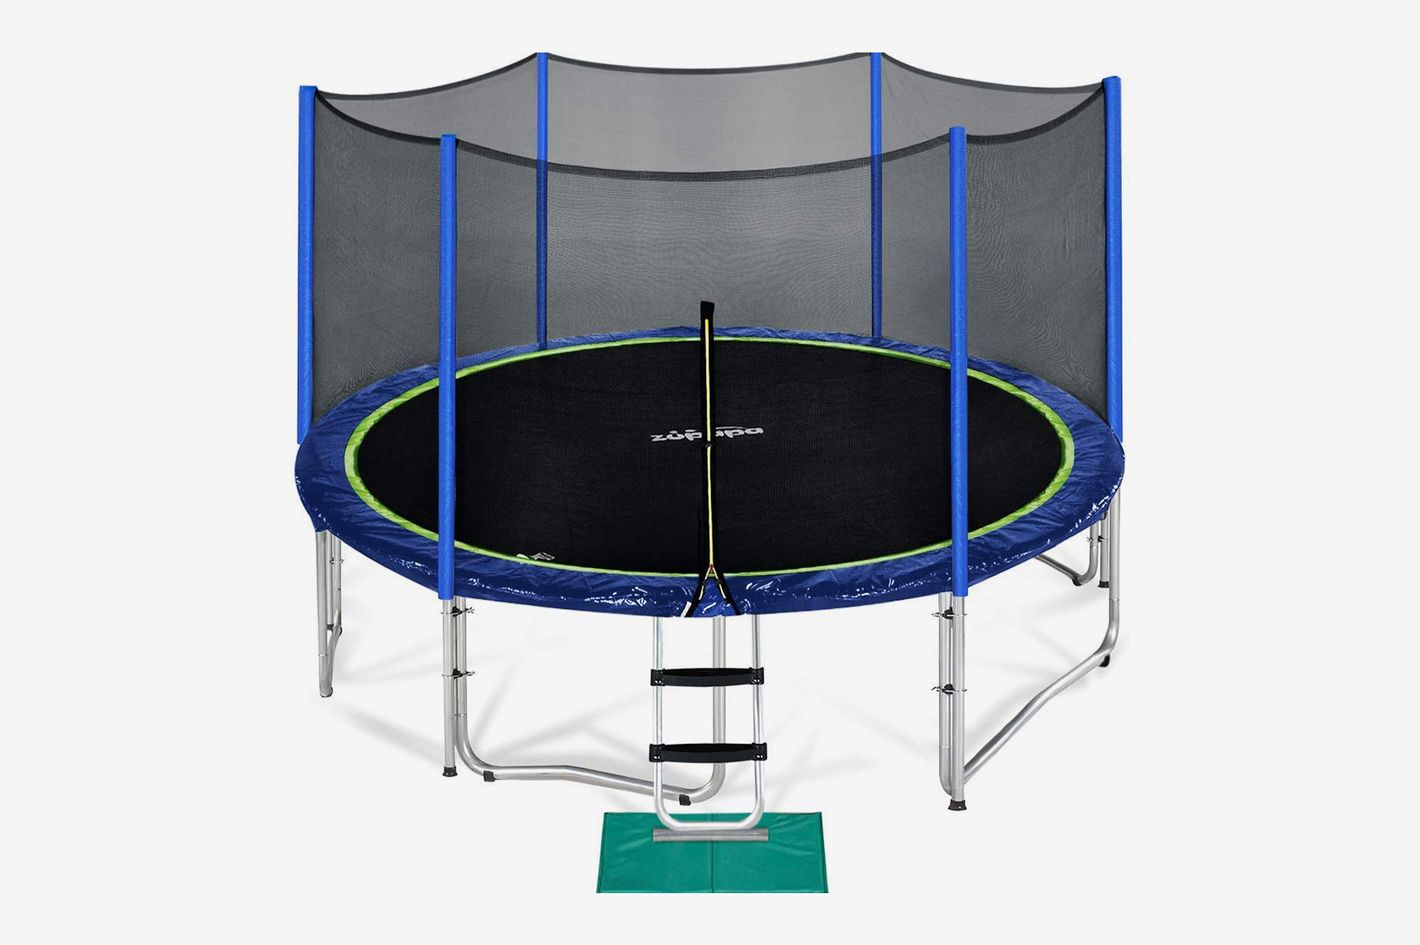 Zupapa Trampoline With Enclosure Net, Poles, and Safety Pad Ladder